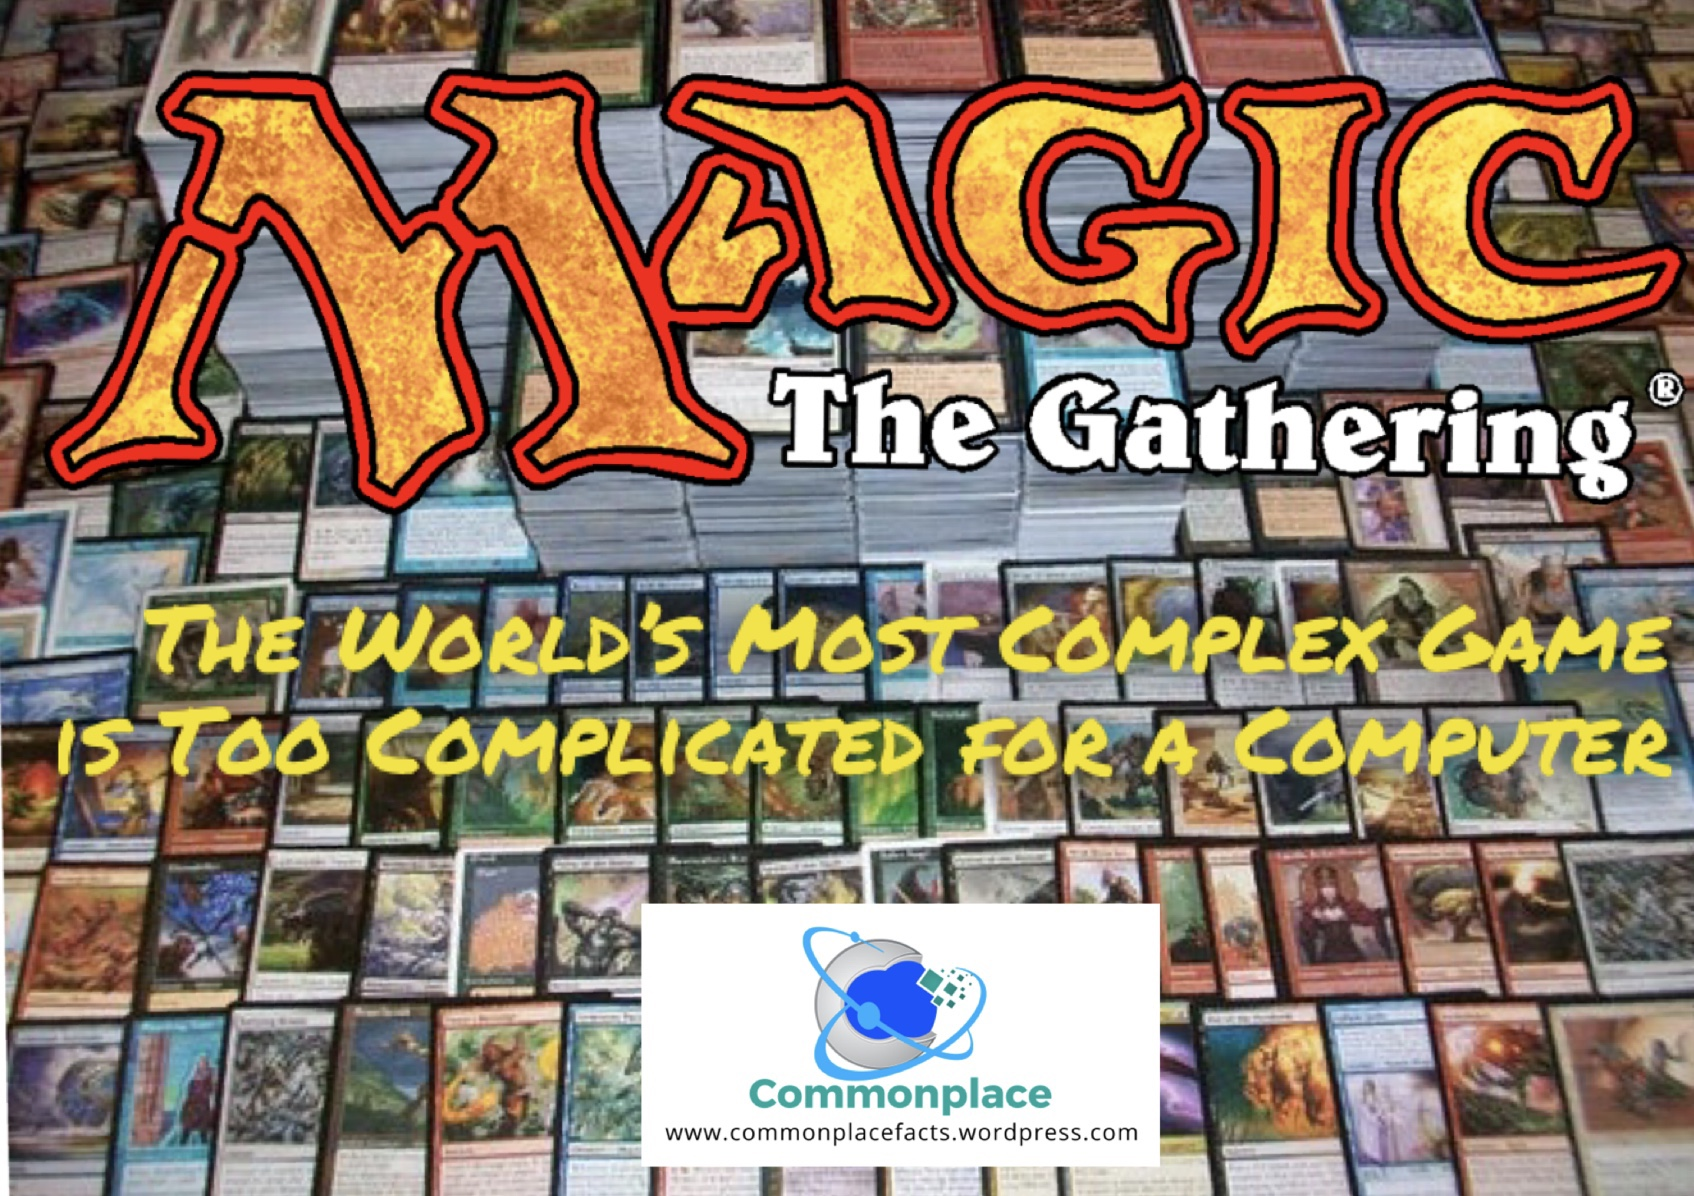 Magic the Gathering most-complex game